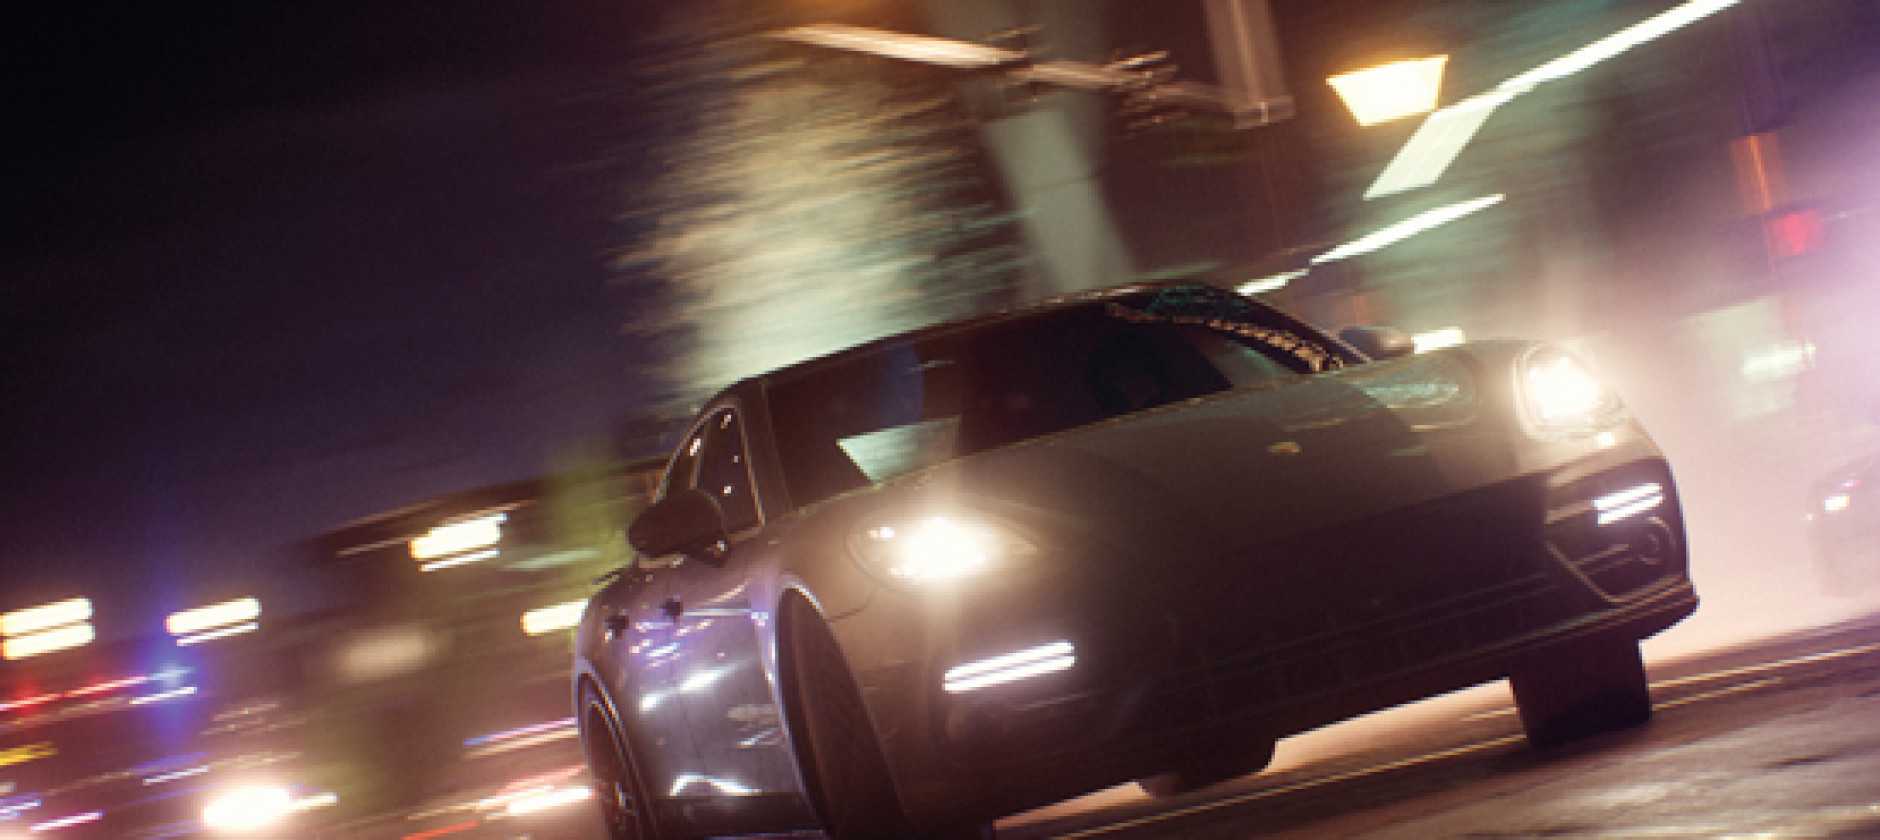 Need for Speed Payback, fughe e gare clandestine all'ultima curva